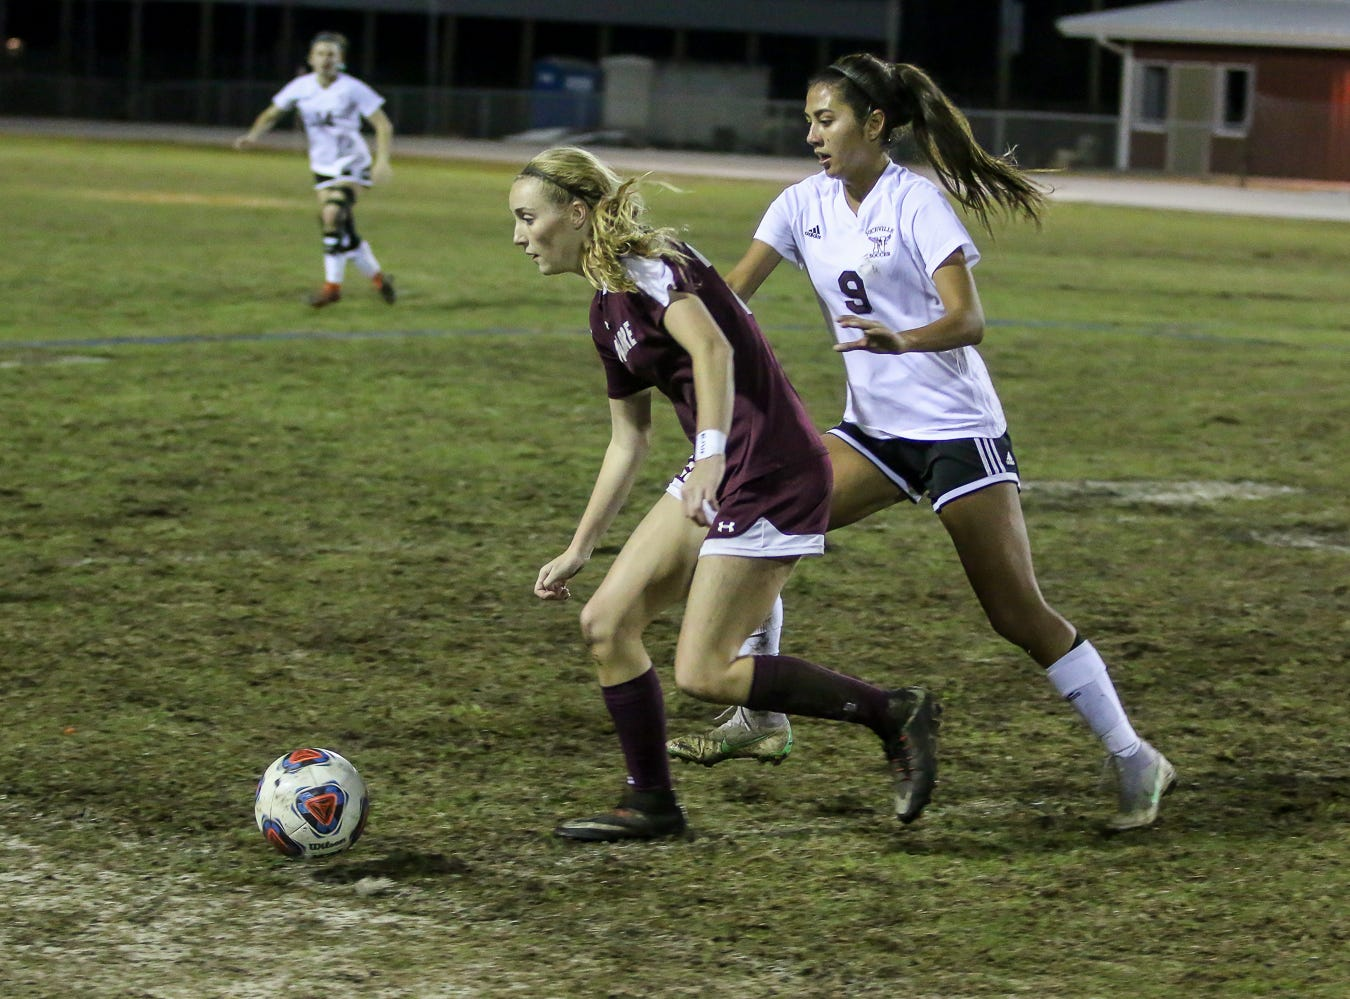 Navarre's Jennifer Seward (22) moves the ball away from Niceville's Liliana Fernandez (9) in a District 1-4A showdown of unbeaten teams at Navarre High School on Tuesday, December 4, 2018. The game ended in a 1-1 tie.